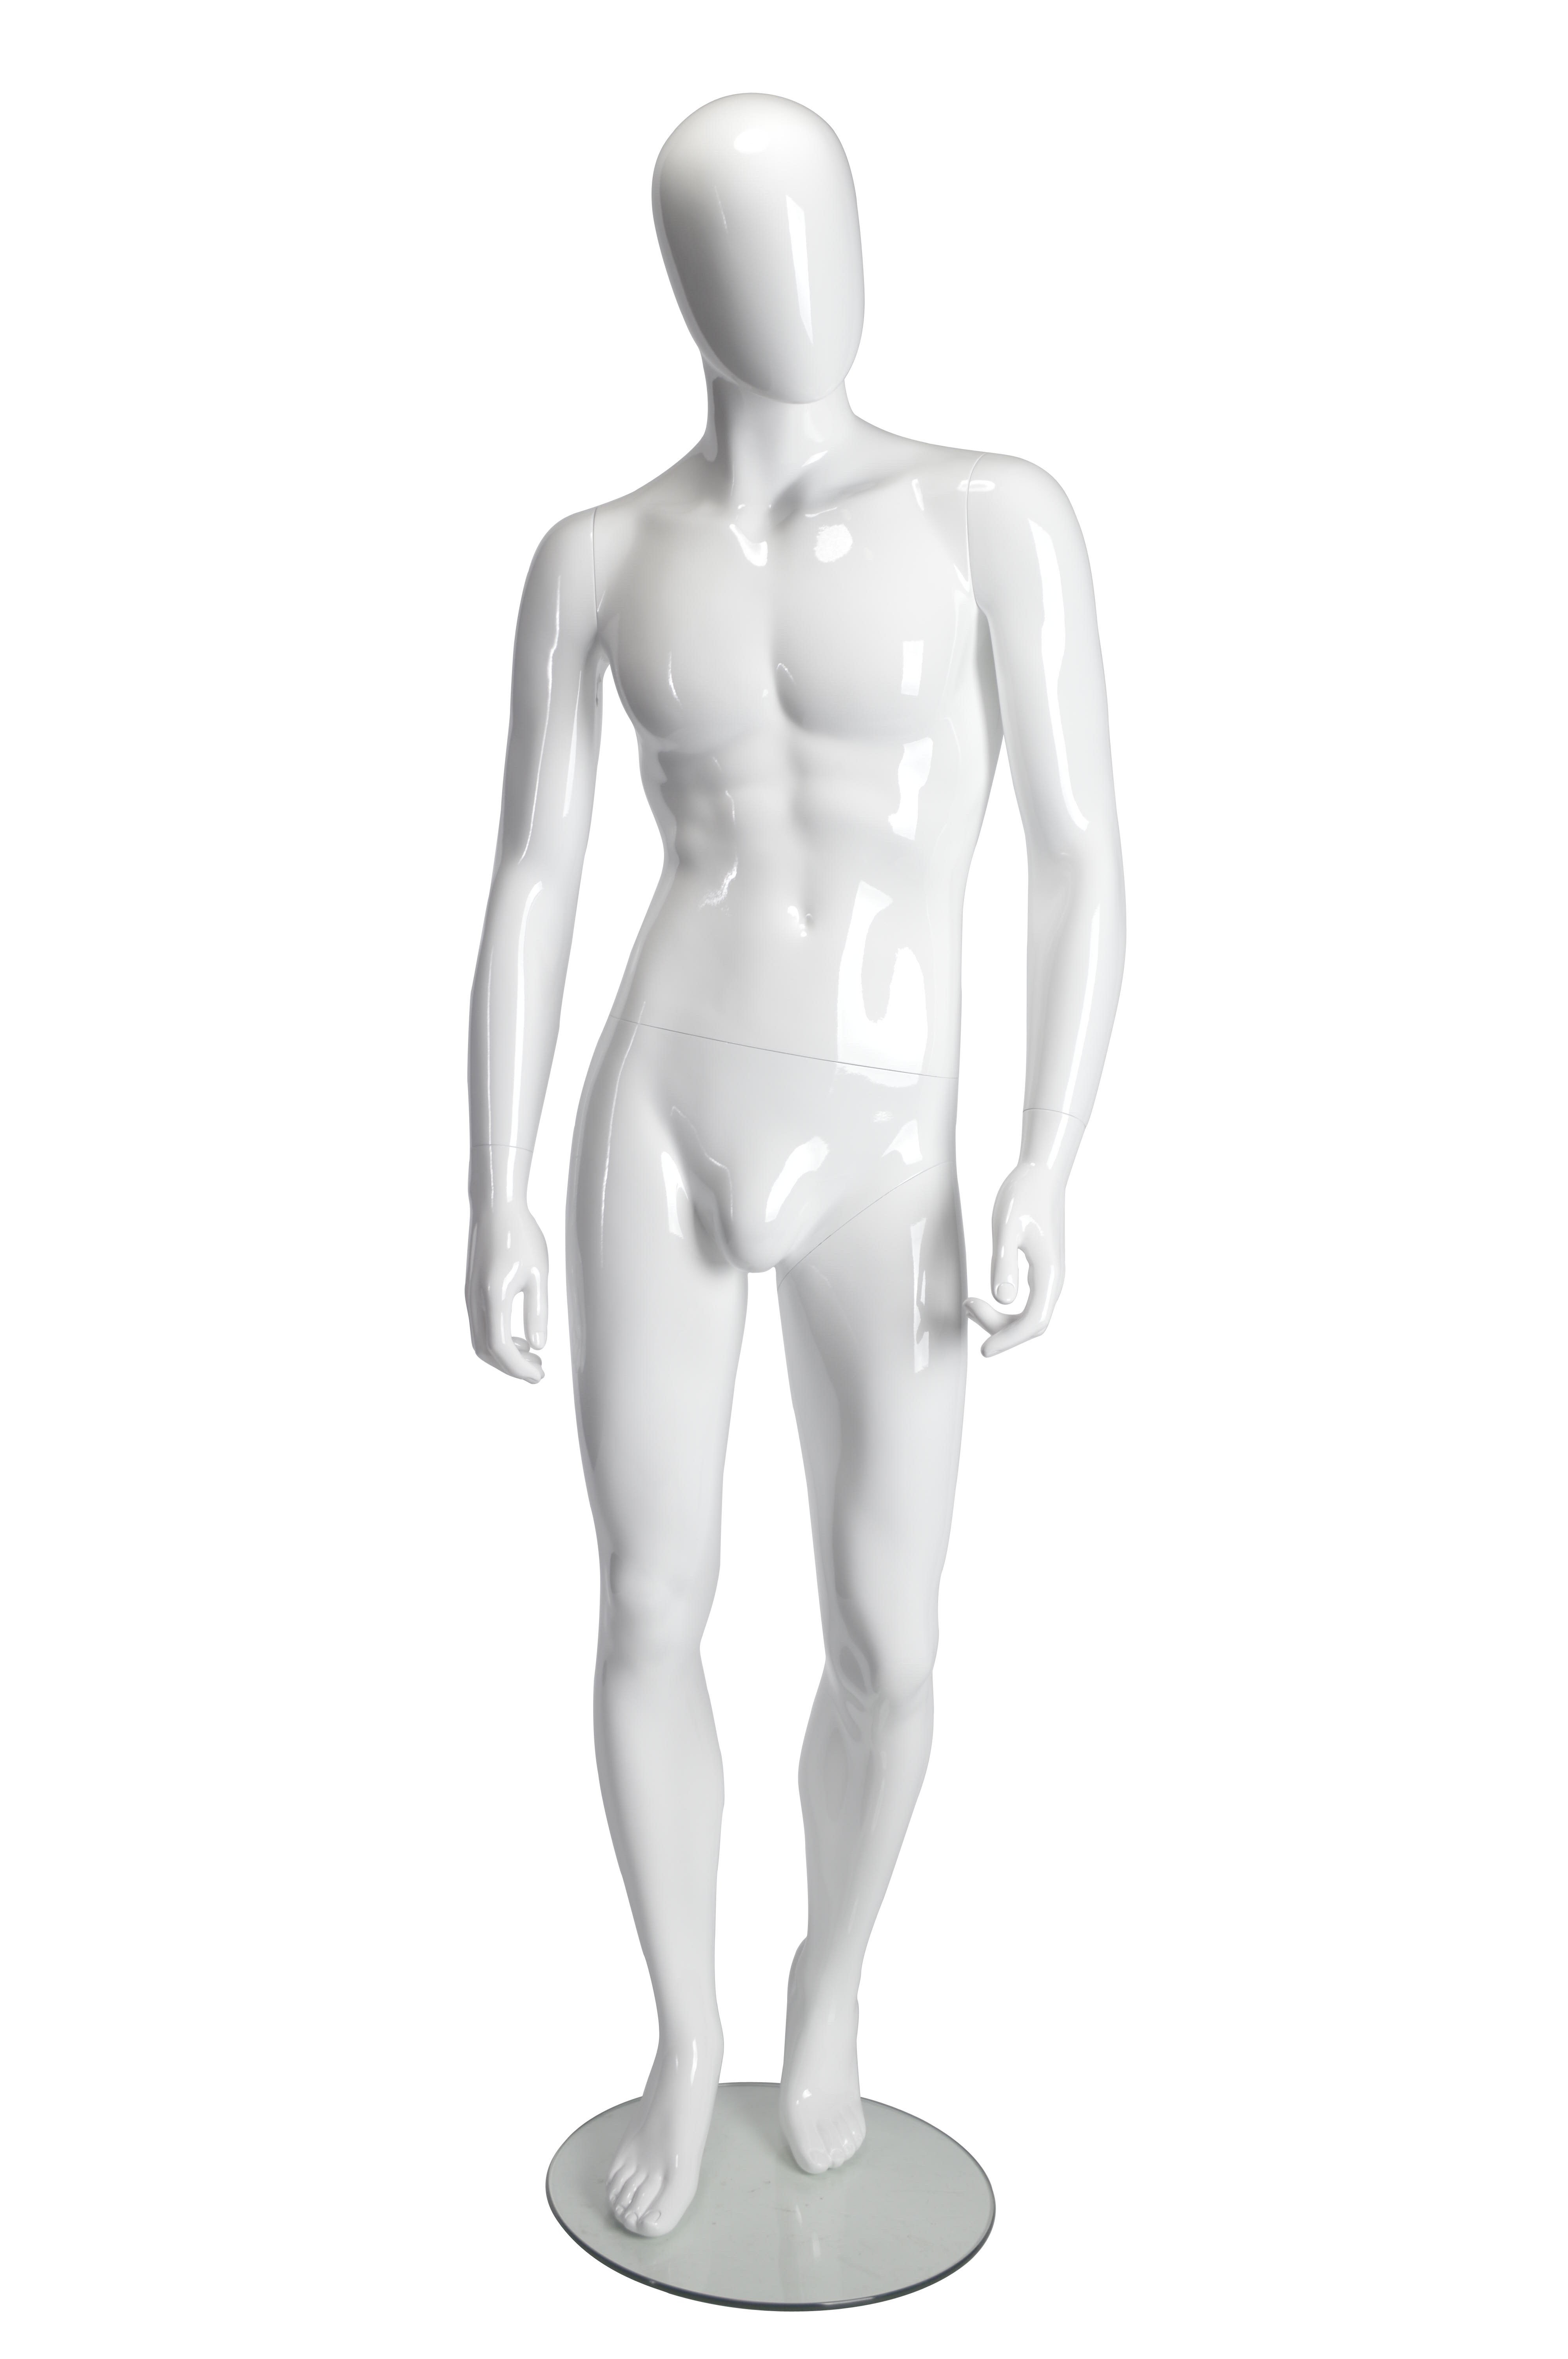 Male Mannequin - White Glossy